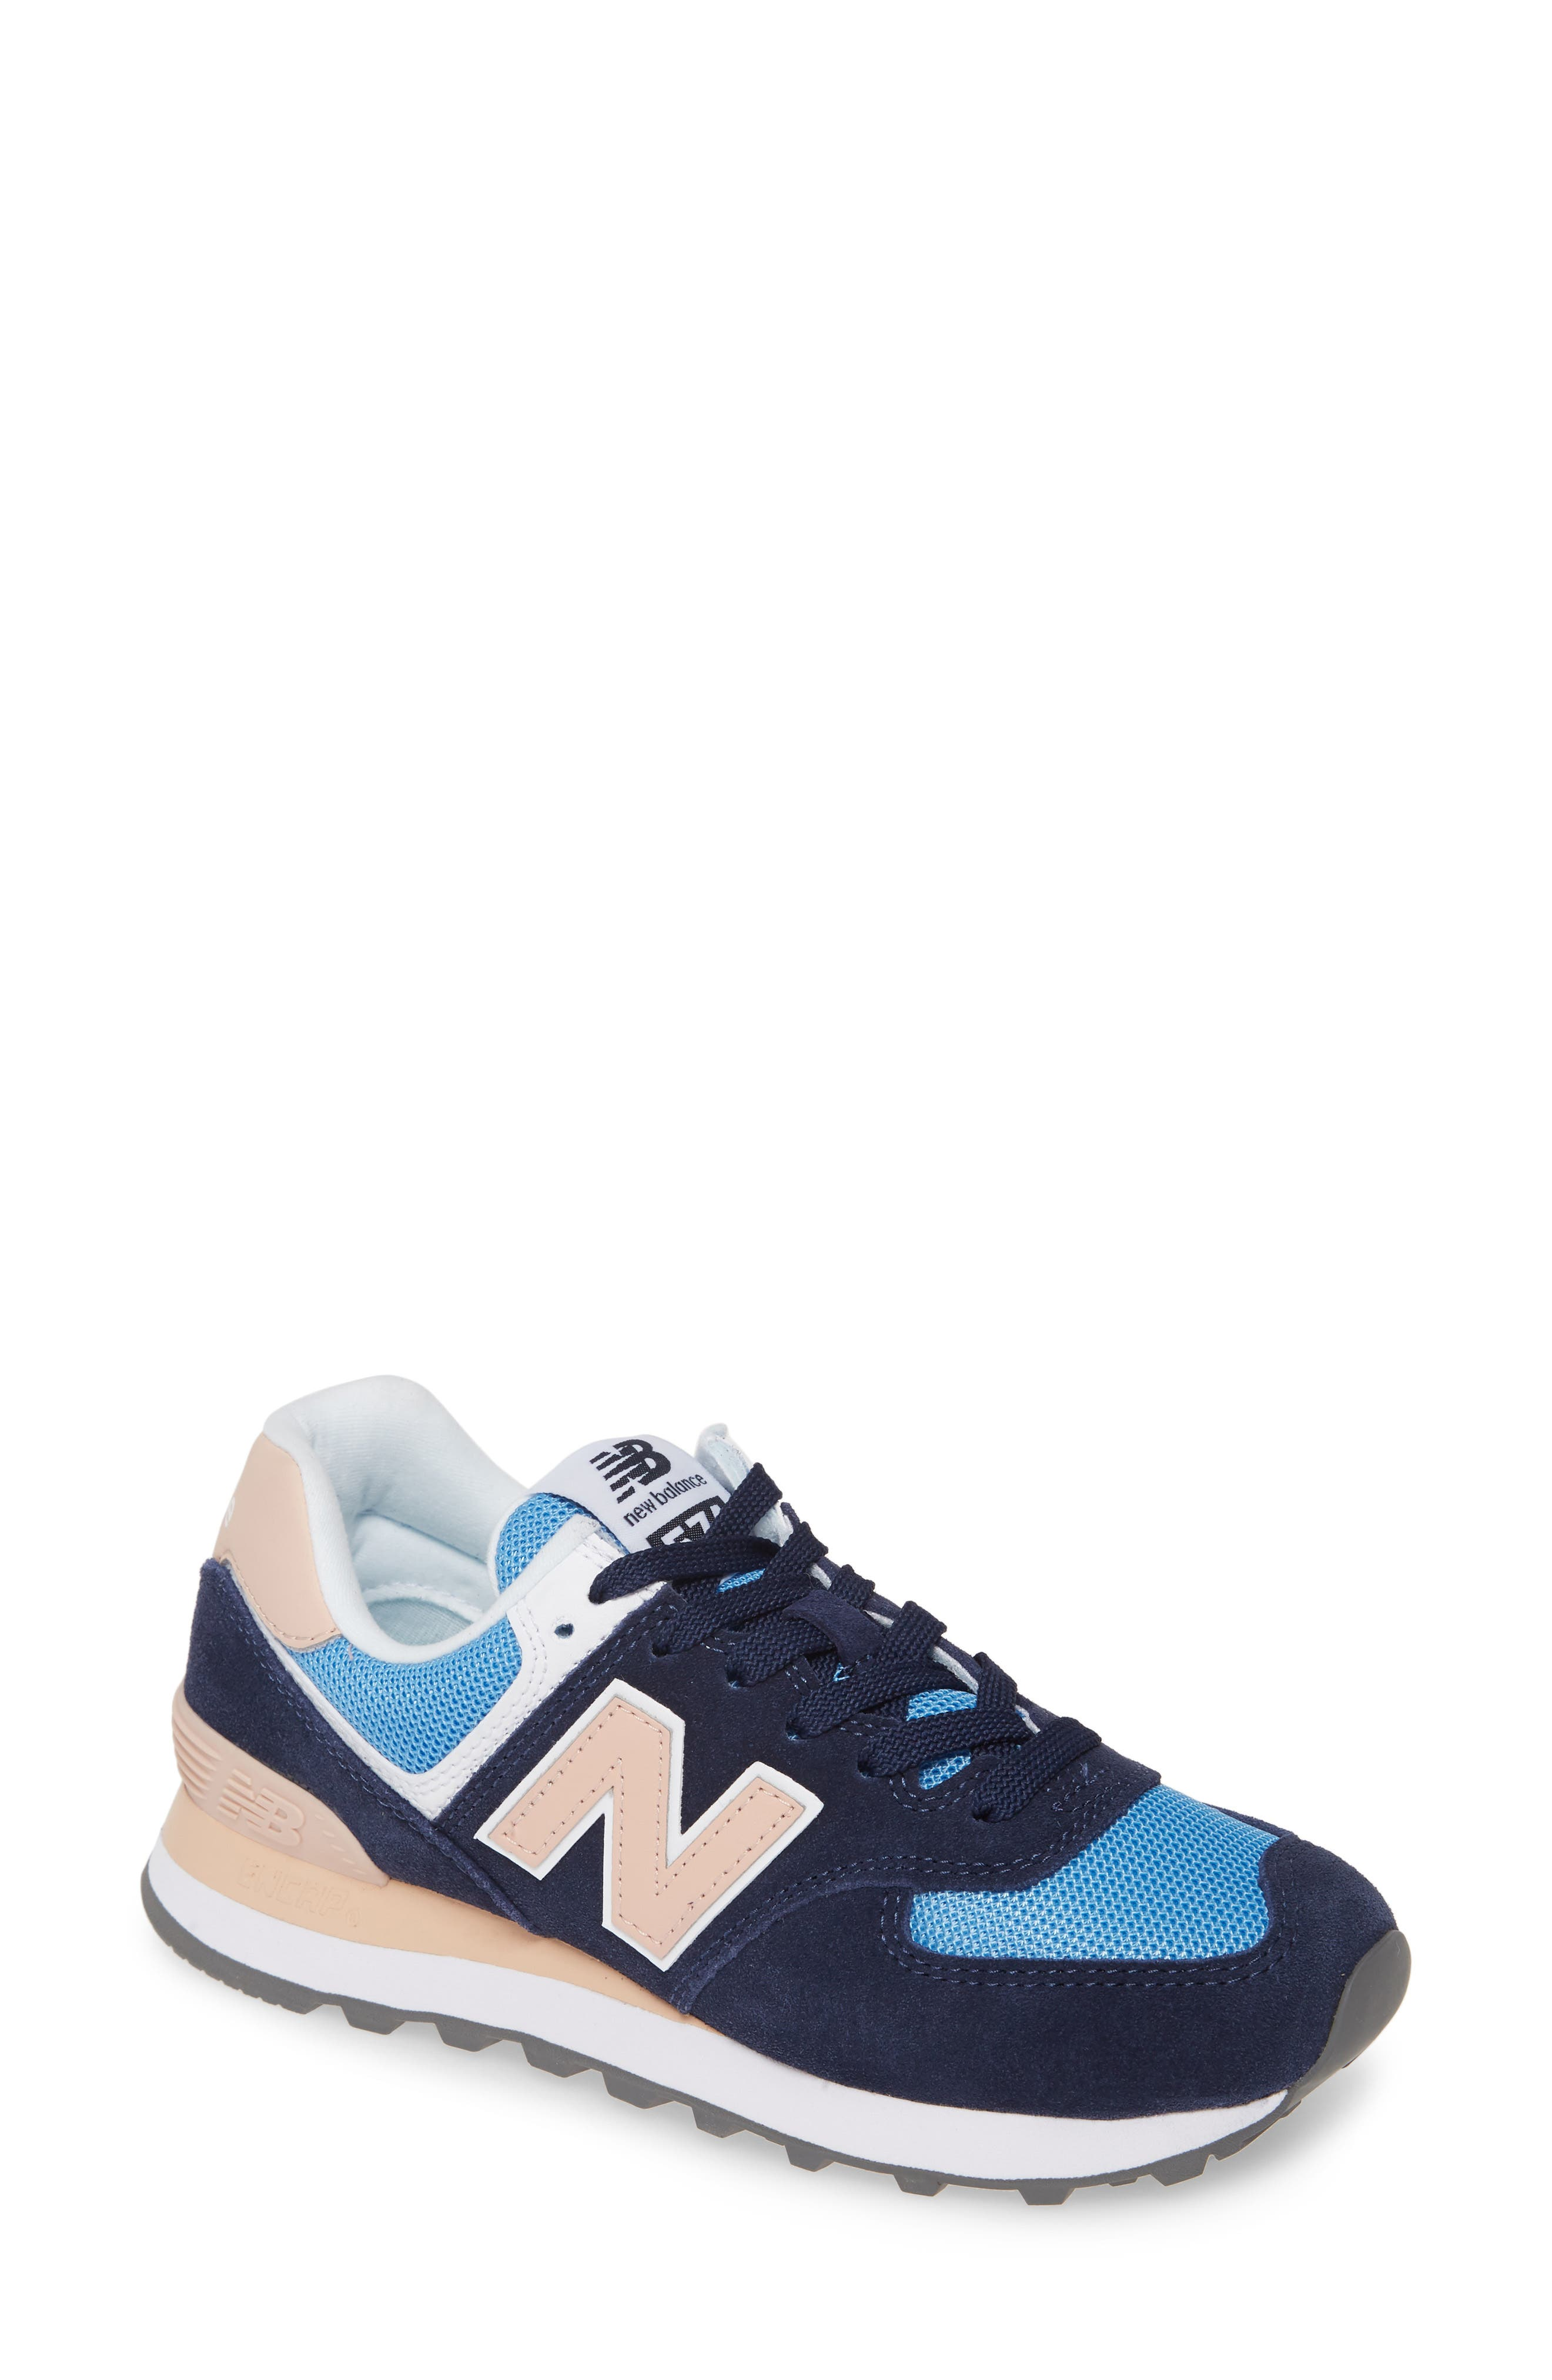 new style 4a65e c5d52 new balance 574 | Nordstrom